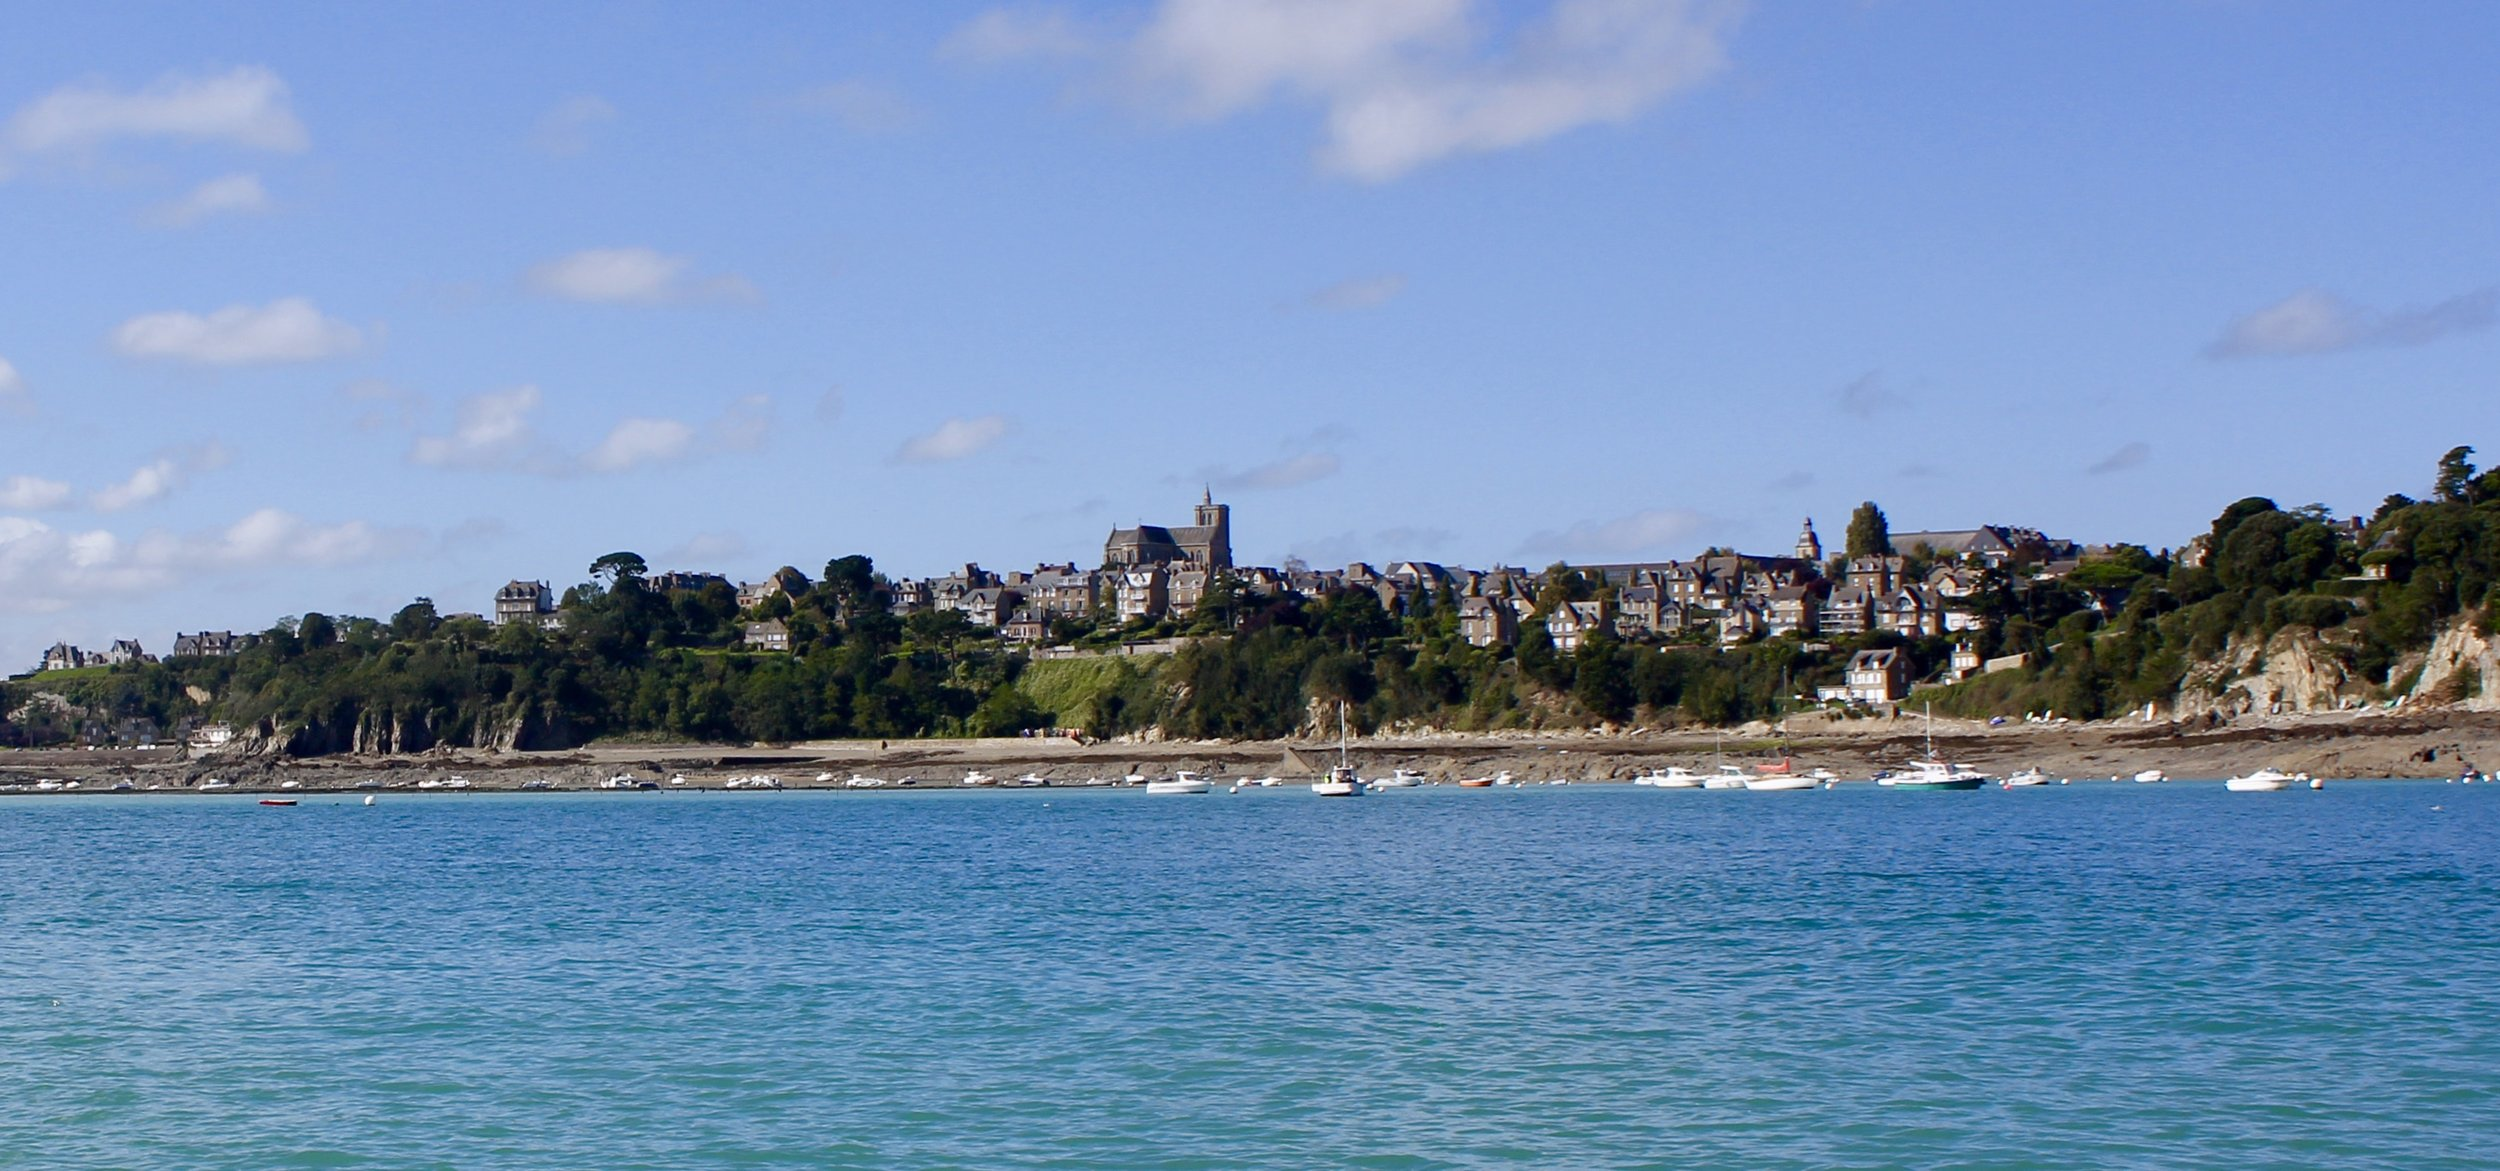 Cancale from the water